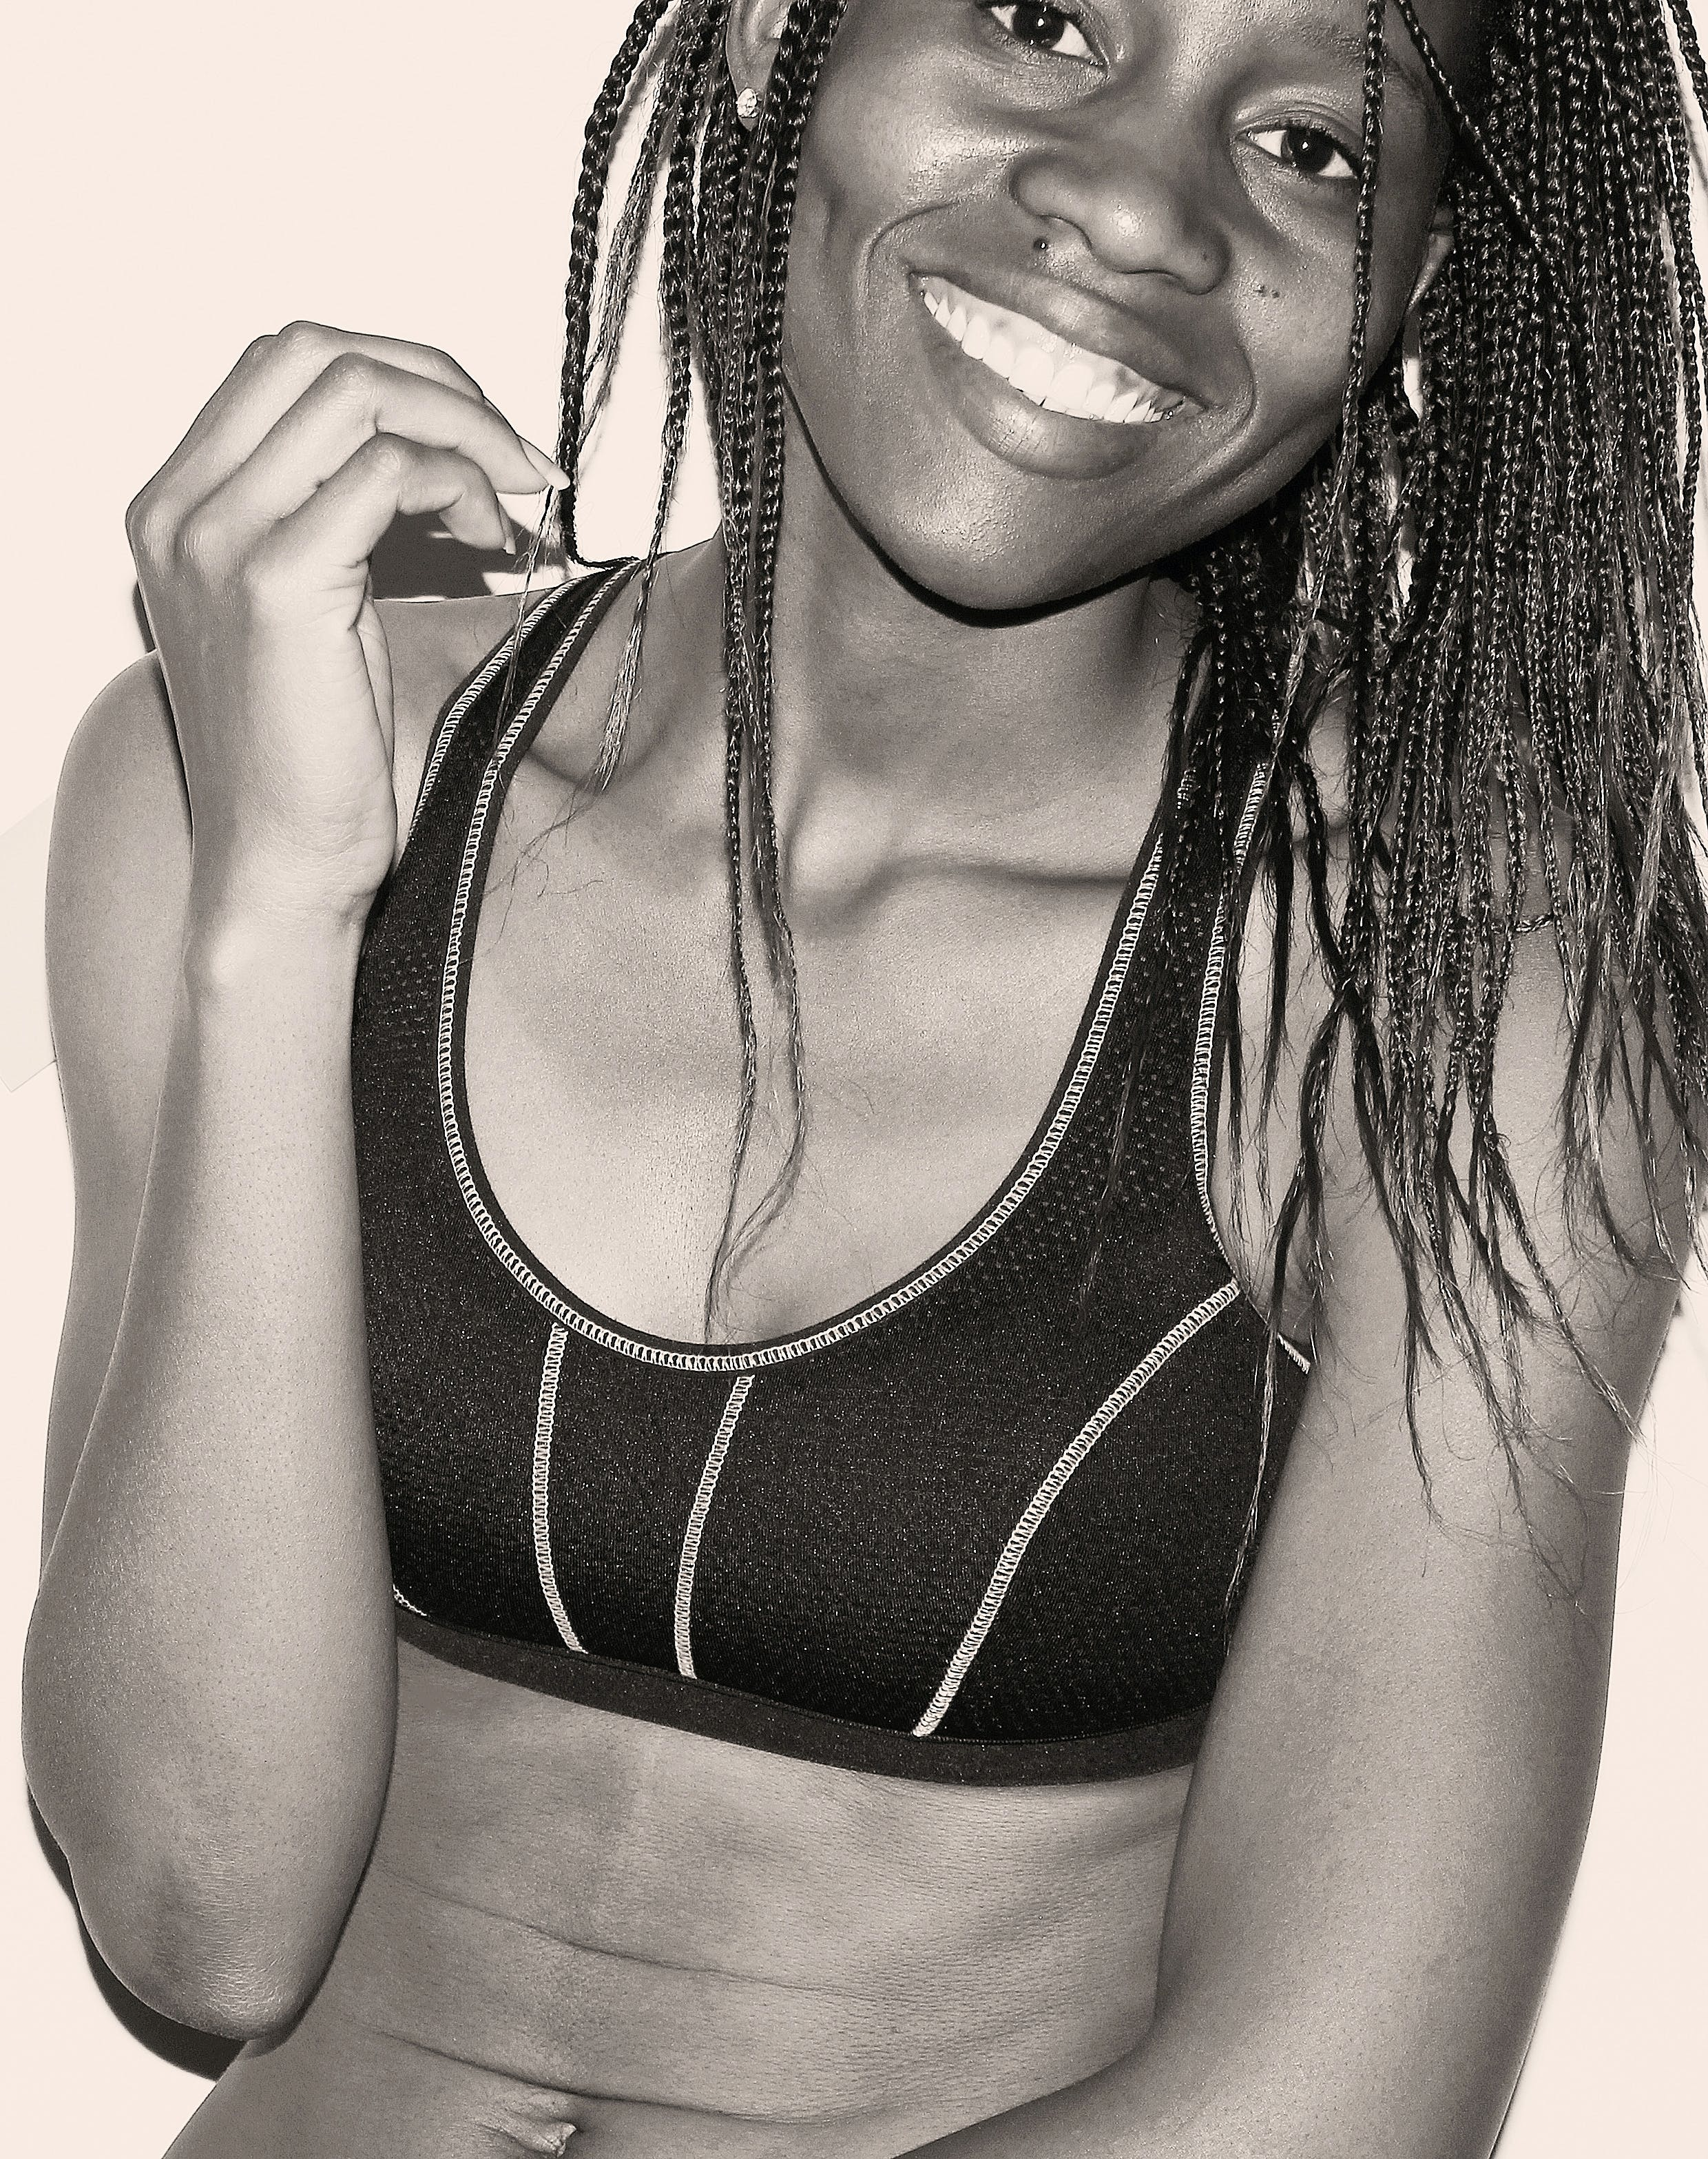 Woman in Sport Bra With Braided Hair Grayscale Photo